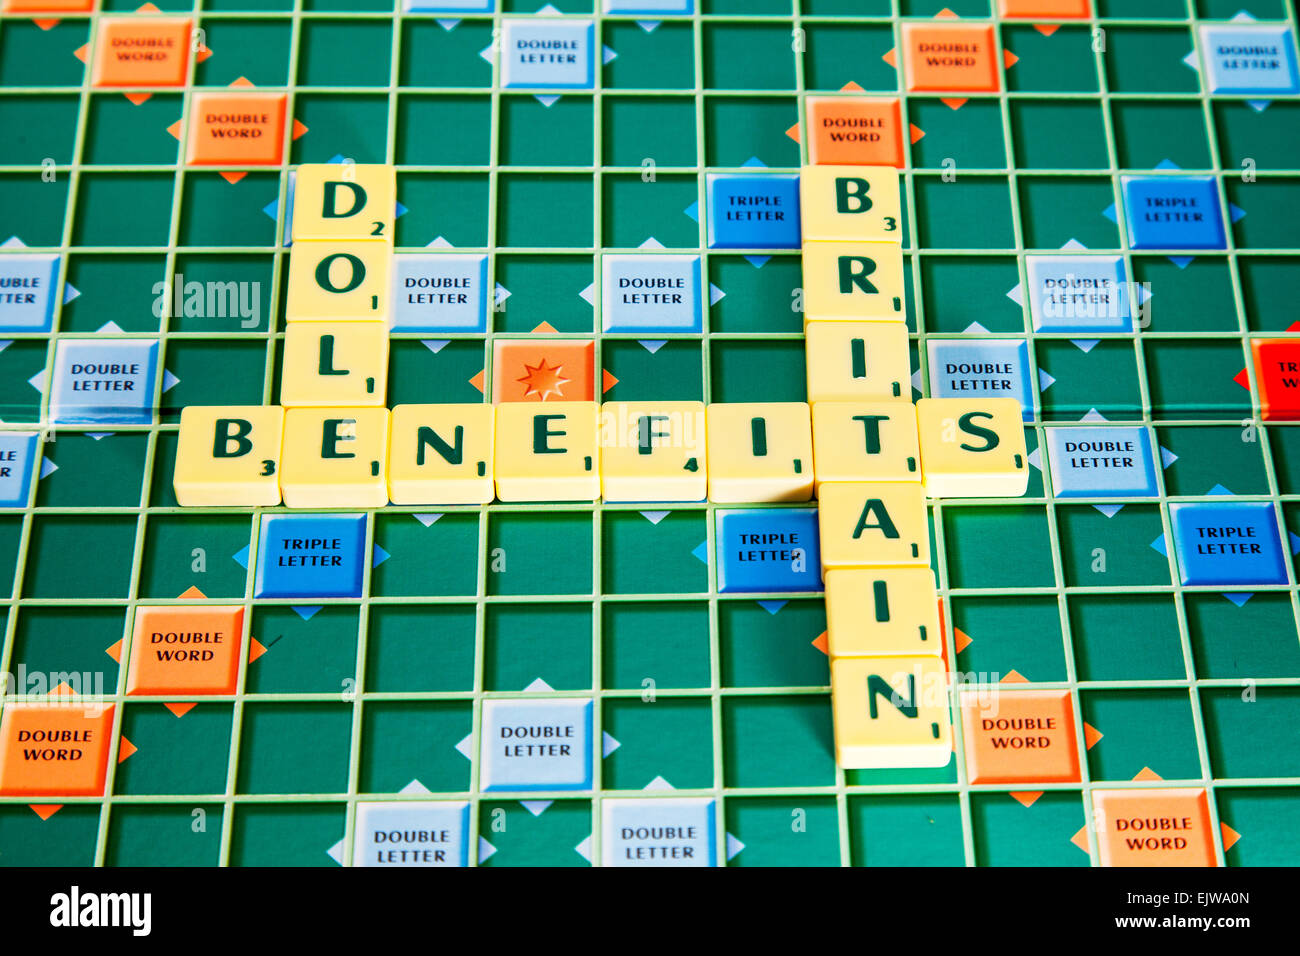 Benefits Britain dole fraud cheats fraudsters work shy spongers words using scrabble tiles to spell out - Stock Image